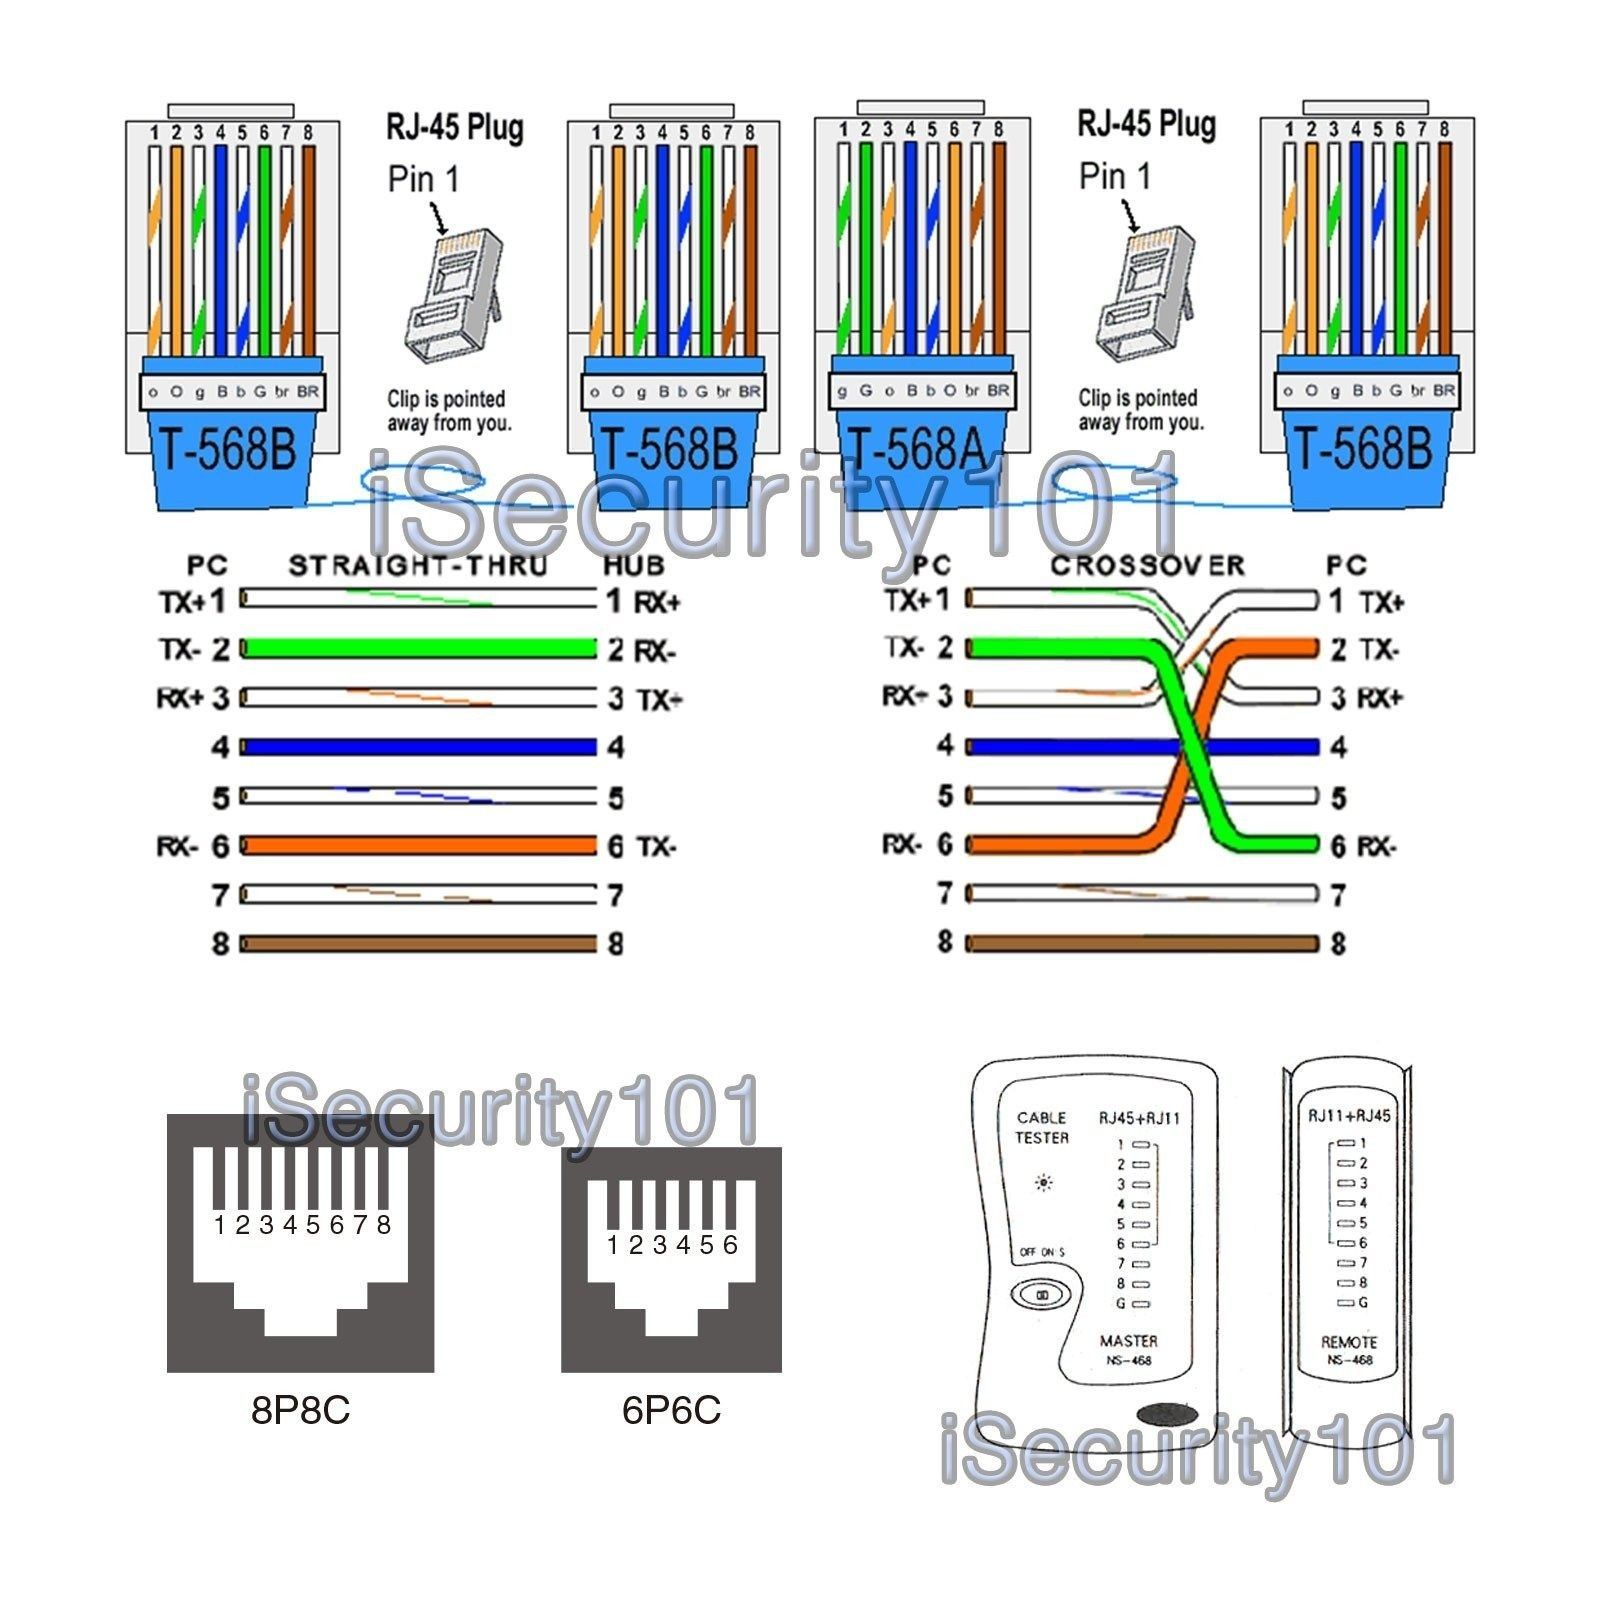 Ethernet Patch Cable Wiring Diagram Cat 5 Cable Diagram Cat5e Wire Diagram New Ethernet Cable Wiring Of Ethernet Patch Cable Wiring Diagram Cat 5 Cable Diagram Cat5e Wire Diagram New Ethernet Cable Wiring